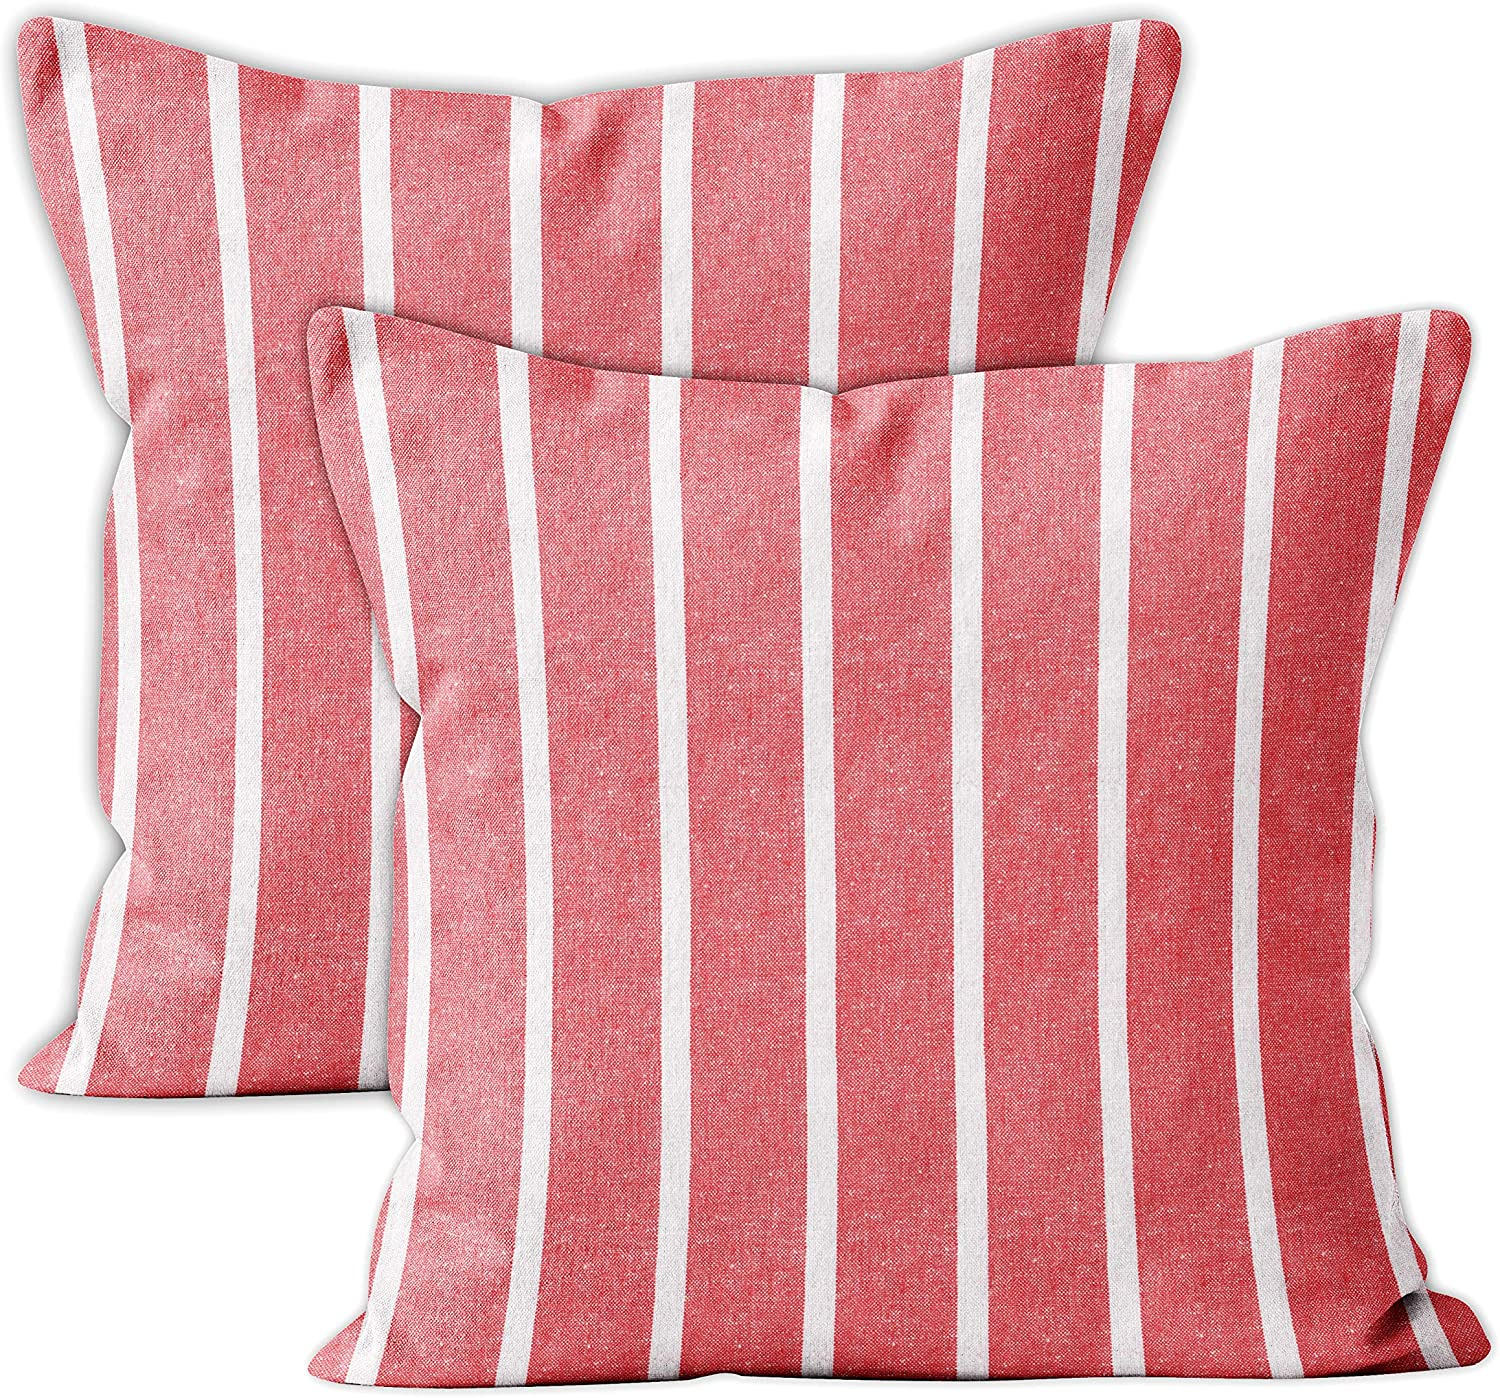 Encasa Homes Farmhouse Throw Pillow Cover 2pc Set - Roma Red Stripes - 18 x 18 inch Recycled Cotton Square Accent Decorative Cushion Cover for Couch Sofa Chair Bed & Home